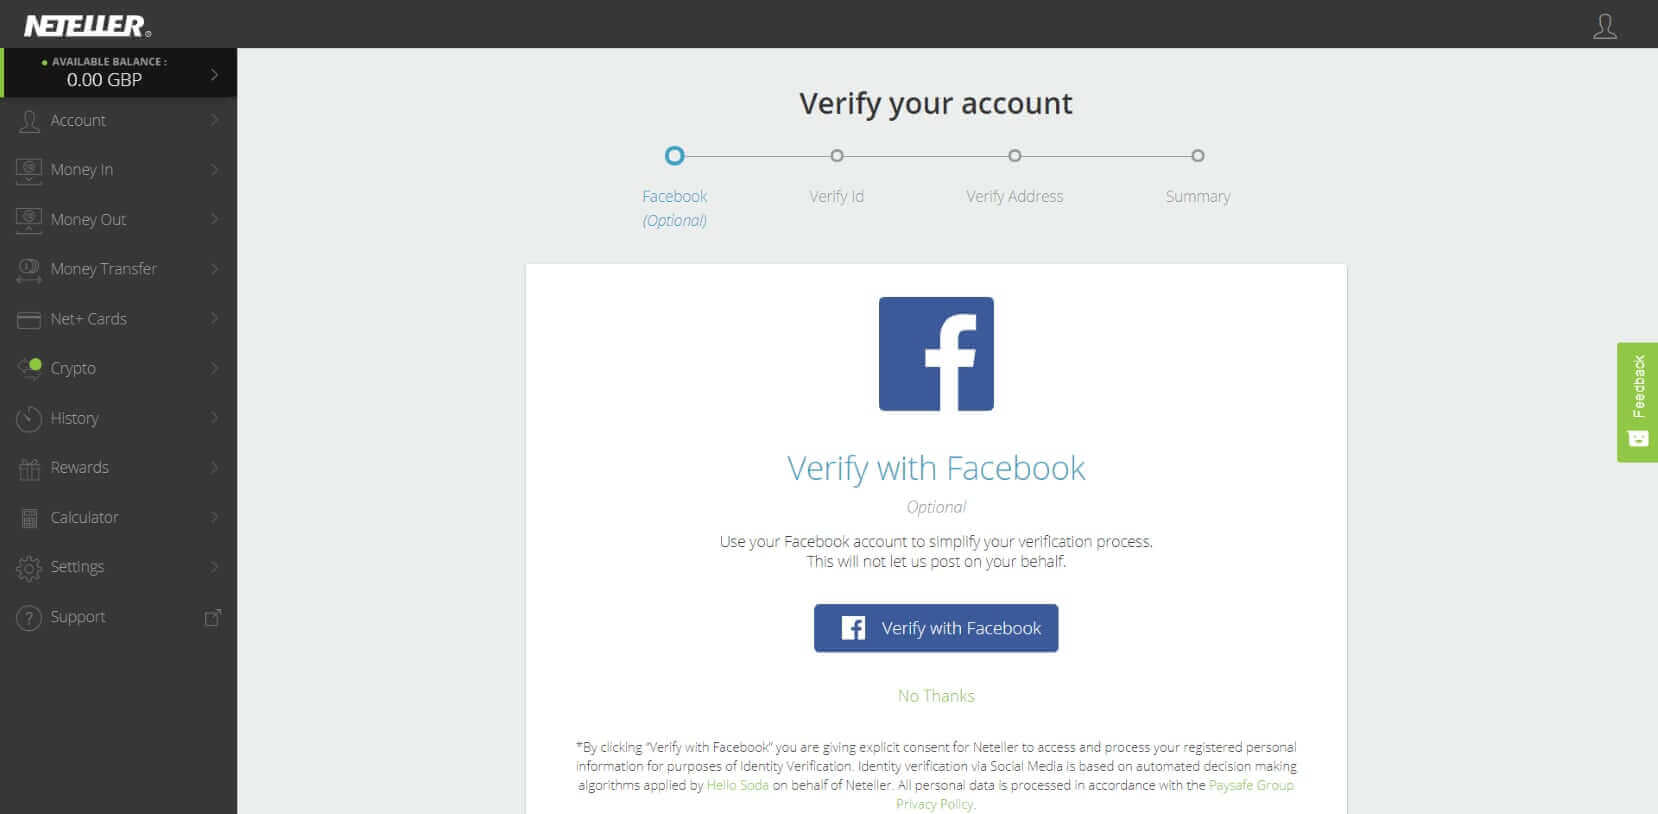 verify neteller with facebook